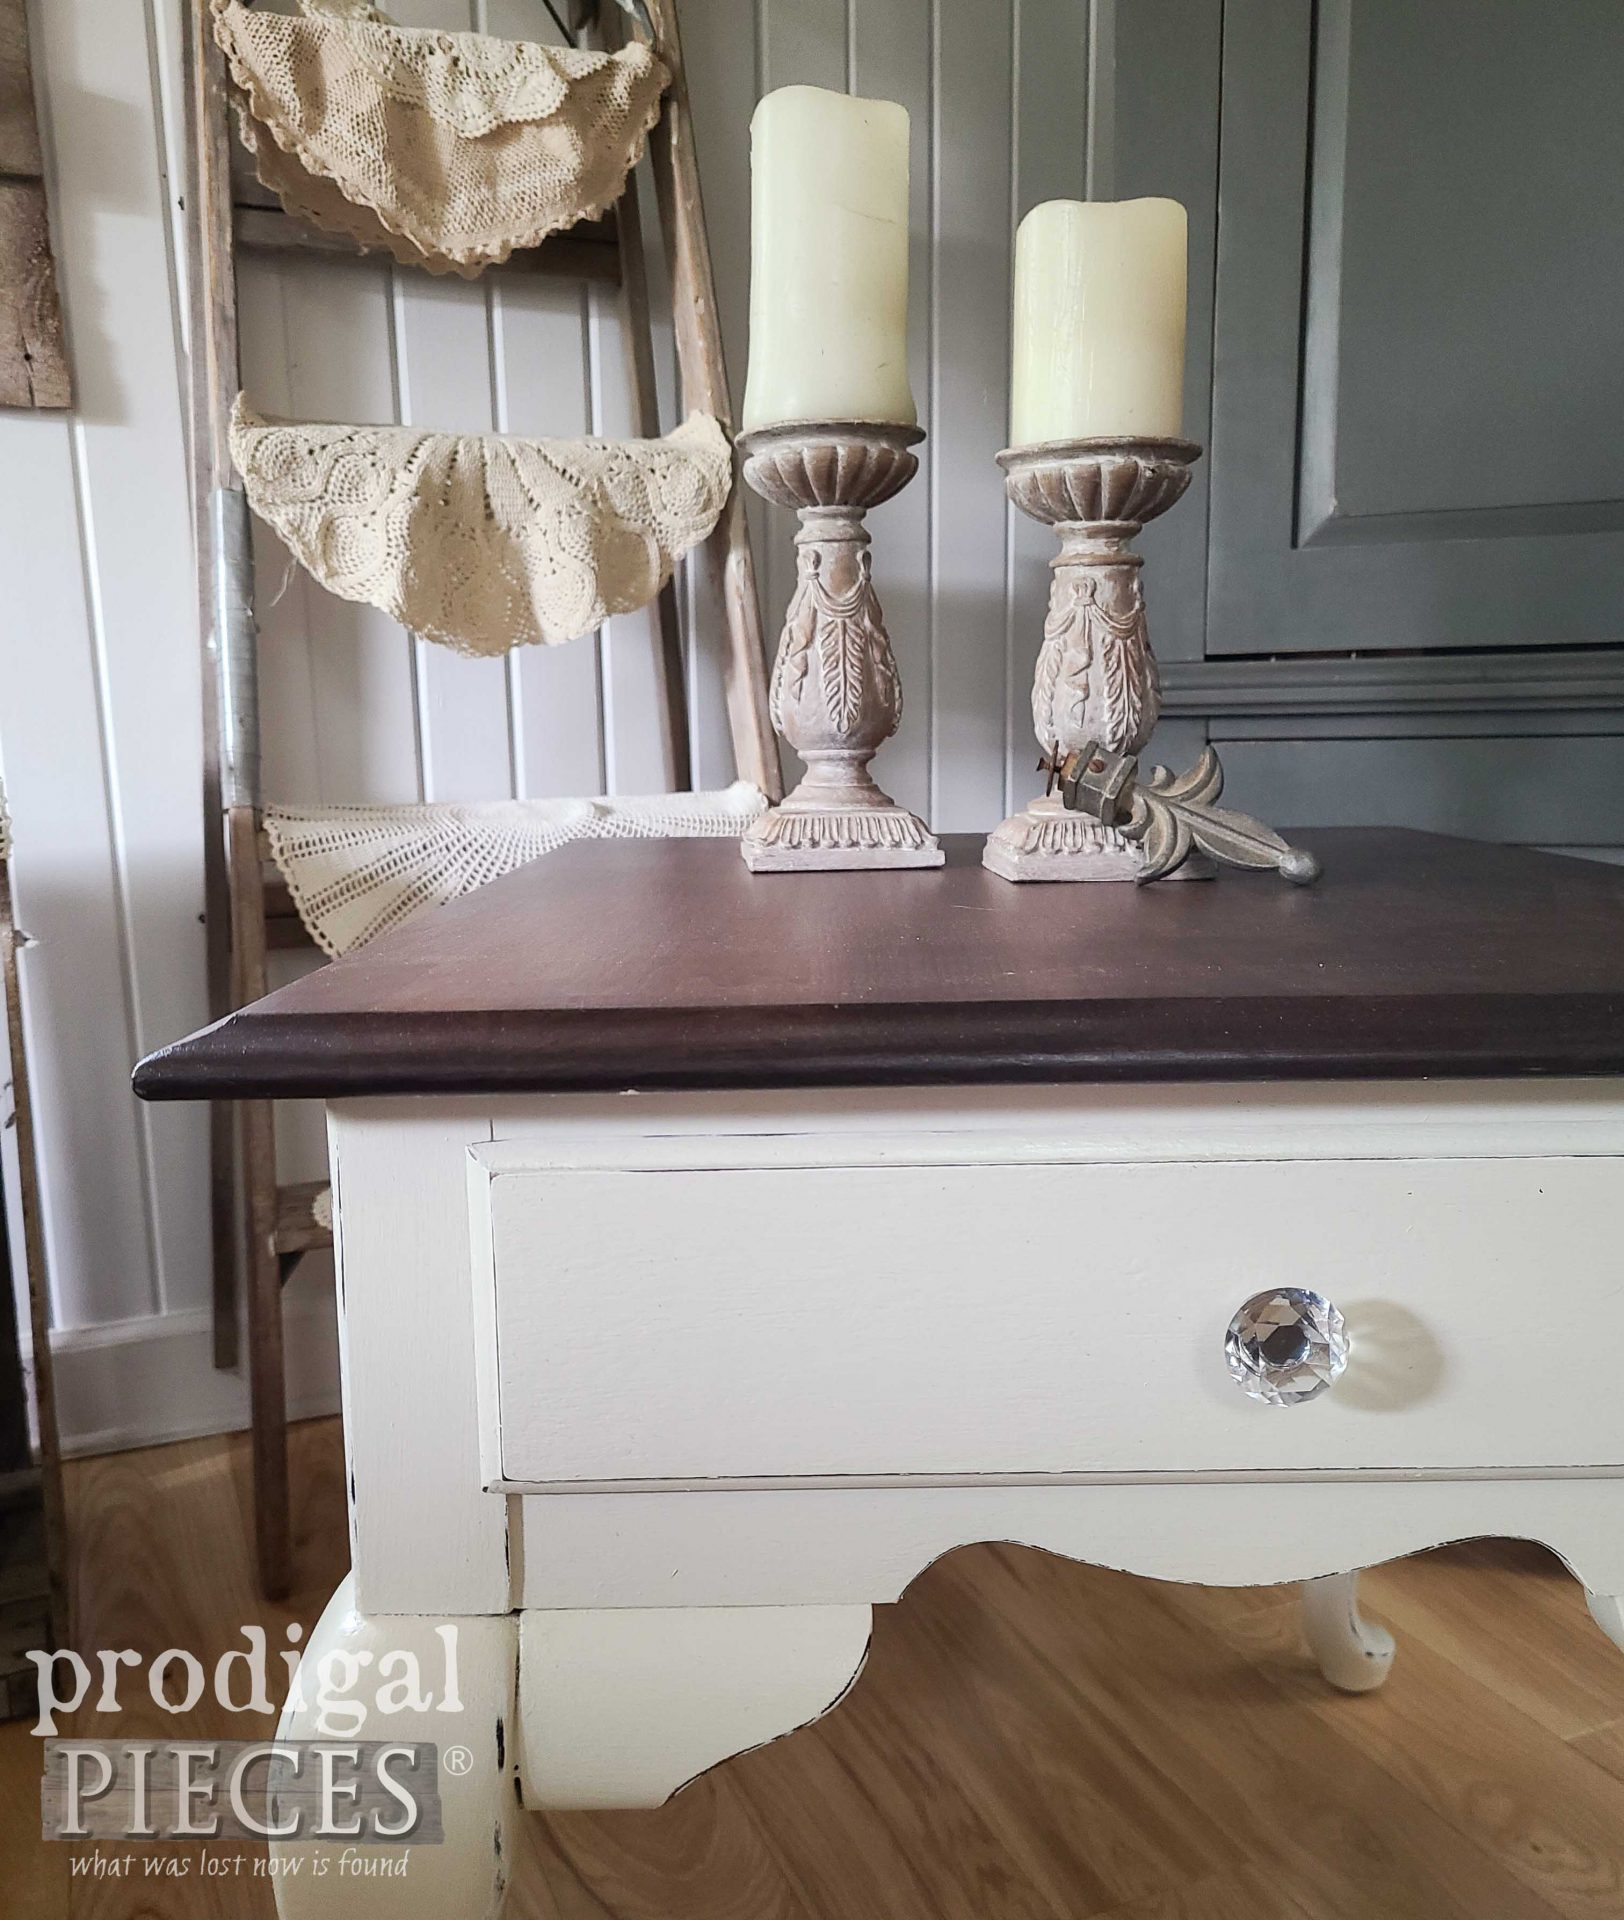 Corner of Broyhill Queen Anne Side Table by Prodigal Pieces | prodigalpieces.com #prodigalpieces #diy #furniture #home #vintage #homedecor